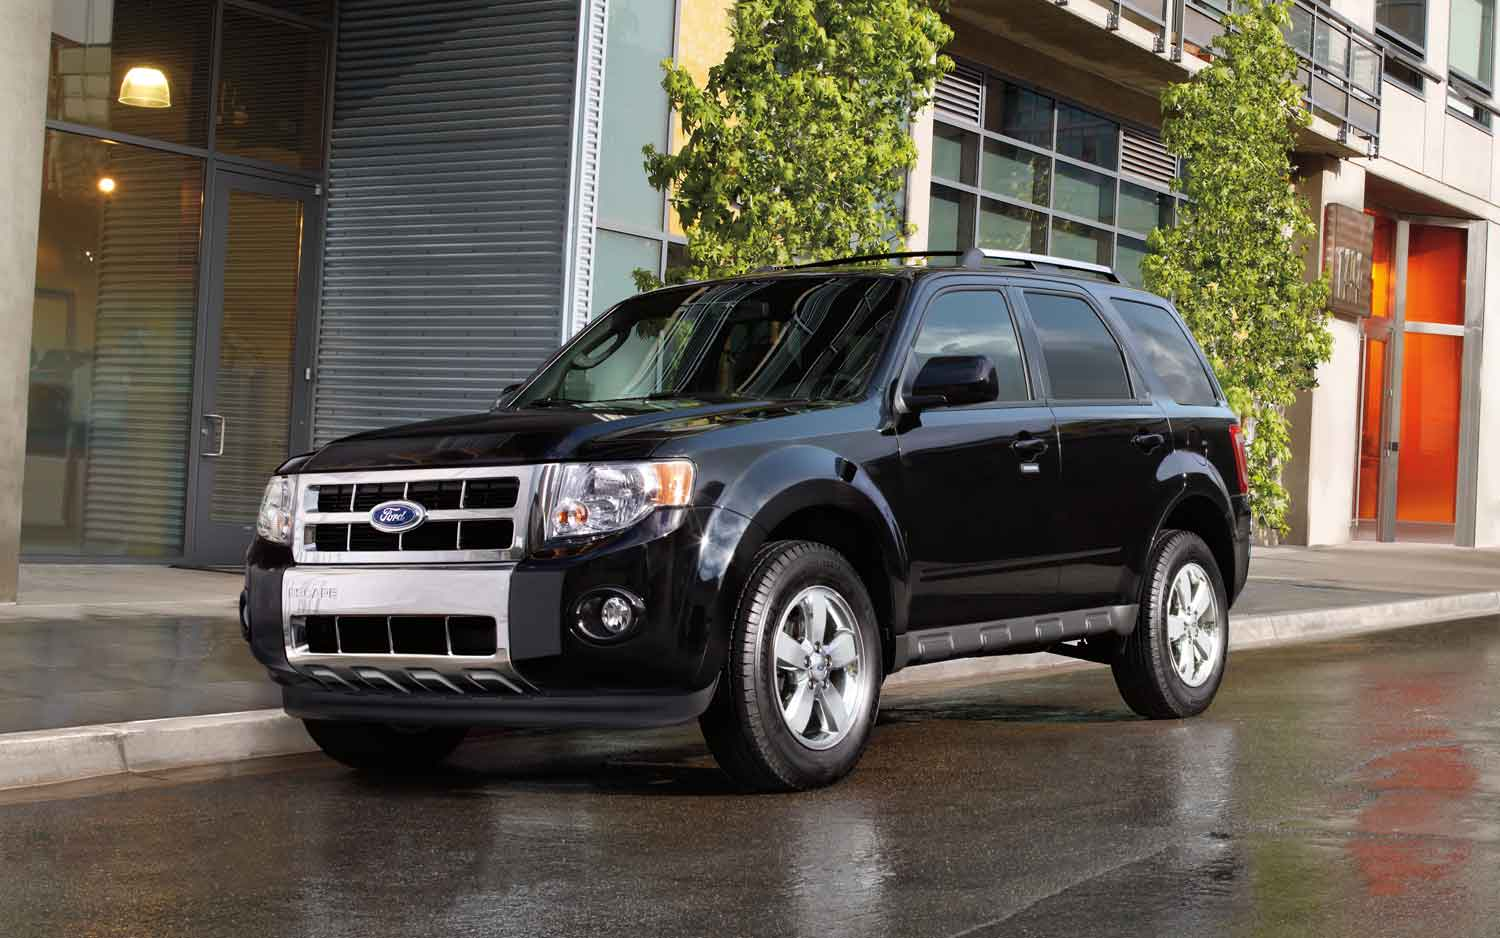 Facelift Cars - 2012 Ford Escape-front-view